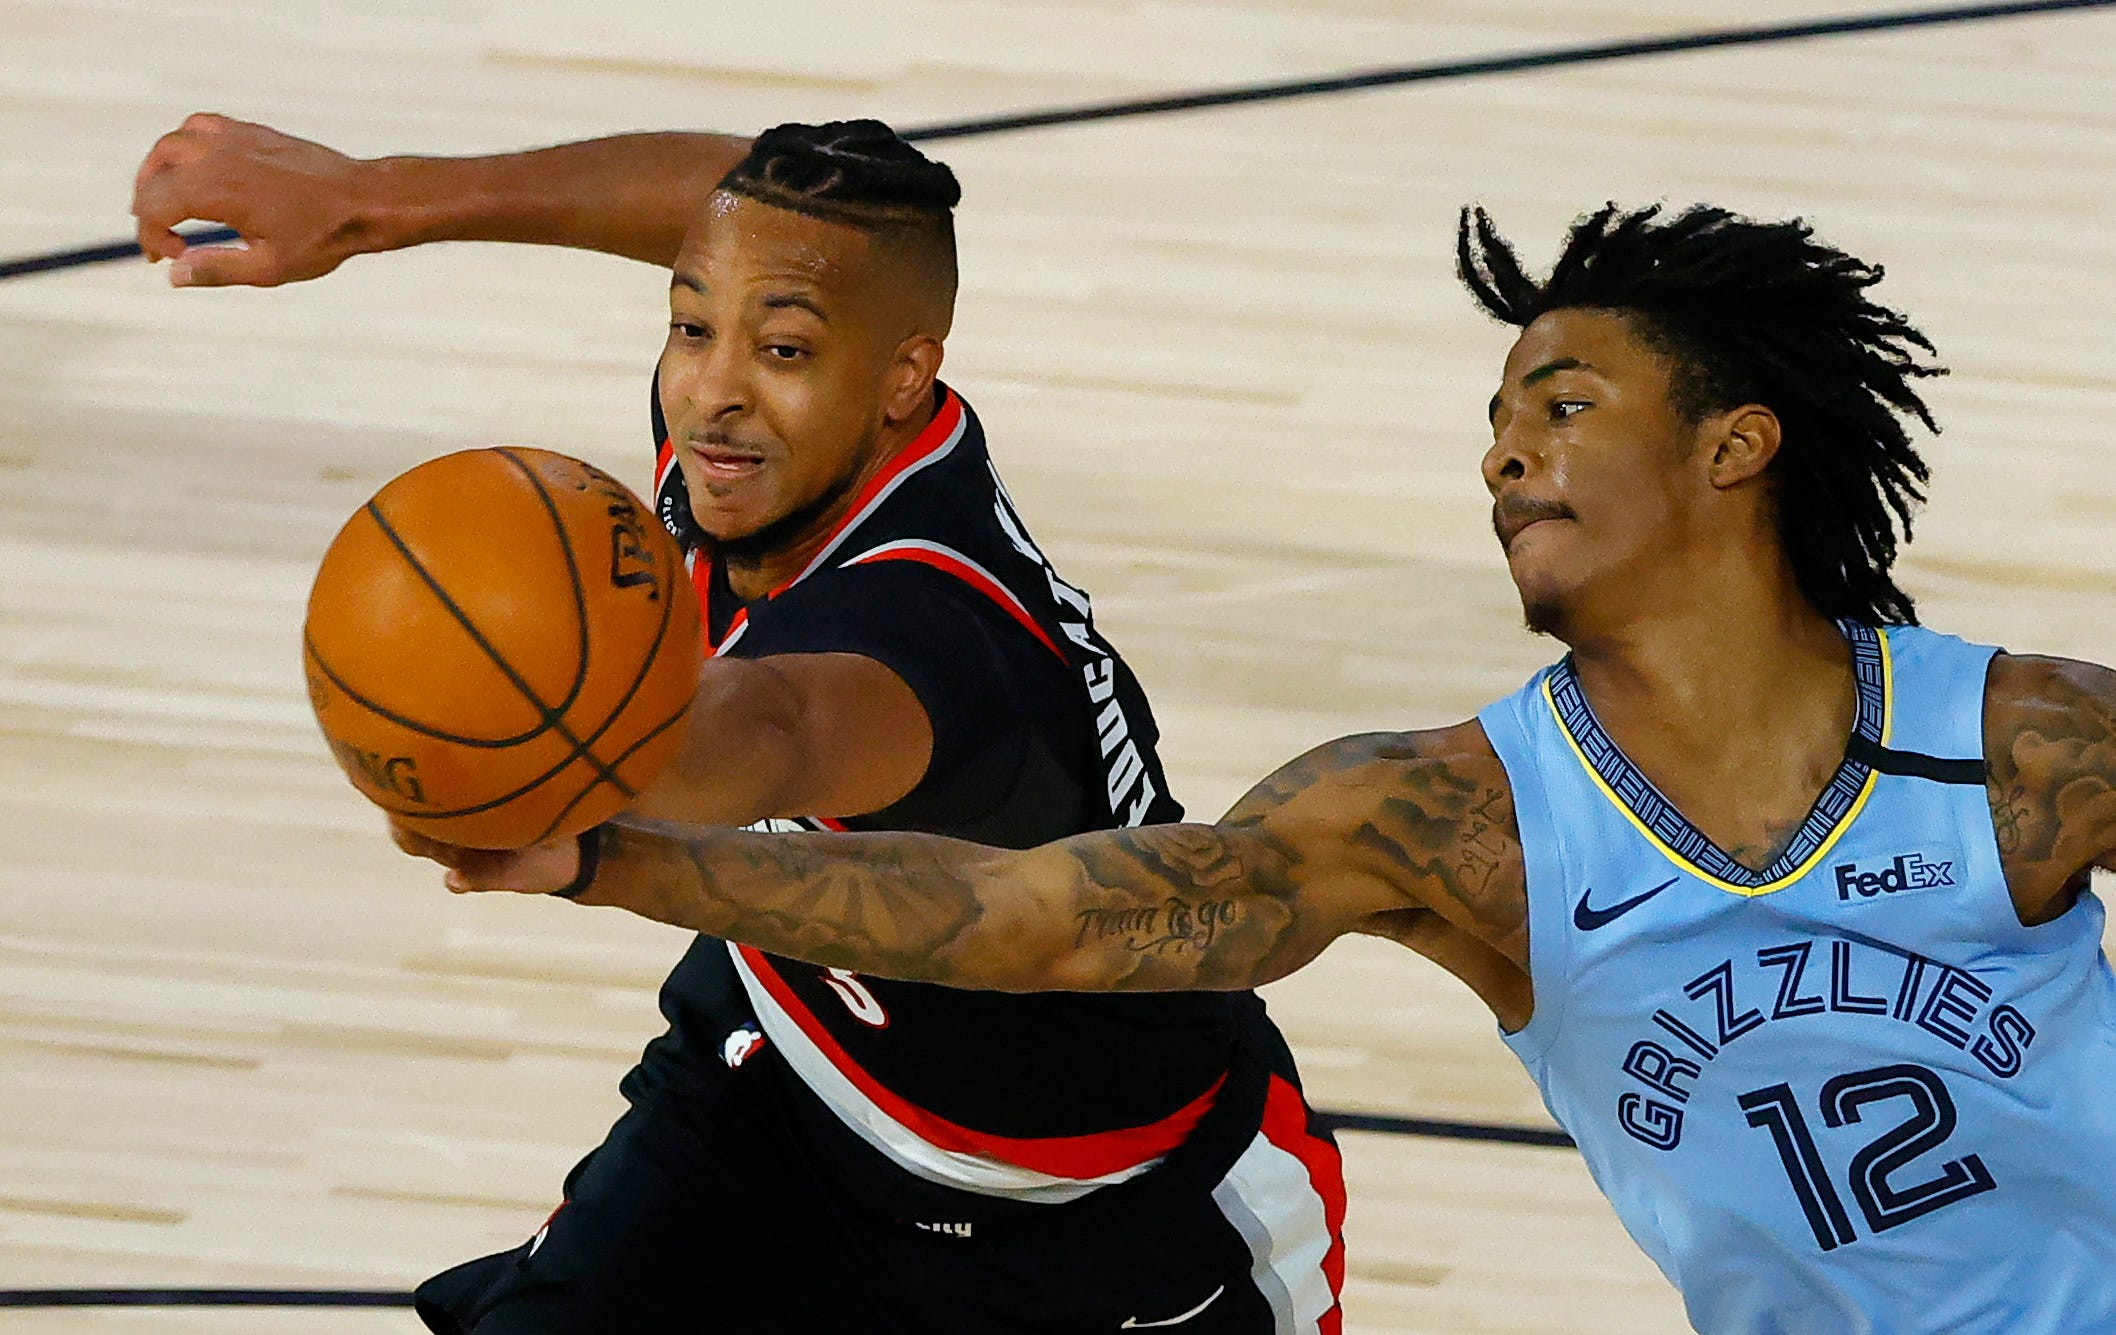 In the first playoff play-in game in NBA's history last August, the eighth-seeded Trail Blazers beat the No. 9 Grizzlies in a thriller to advance into the playoffs.